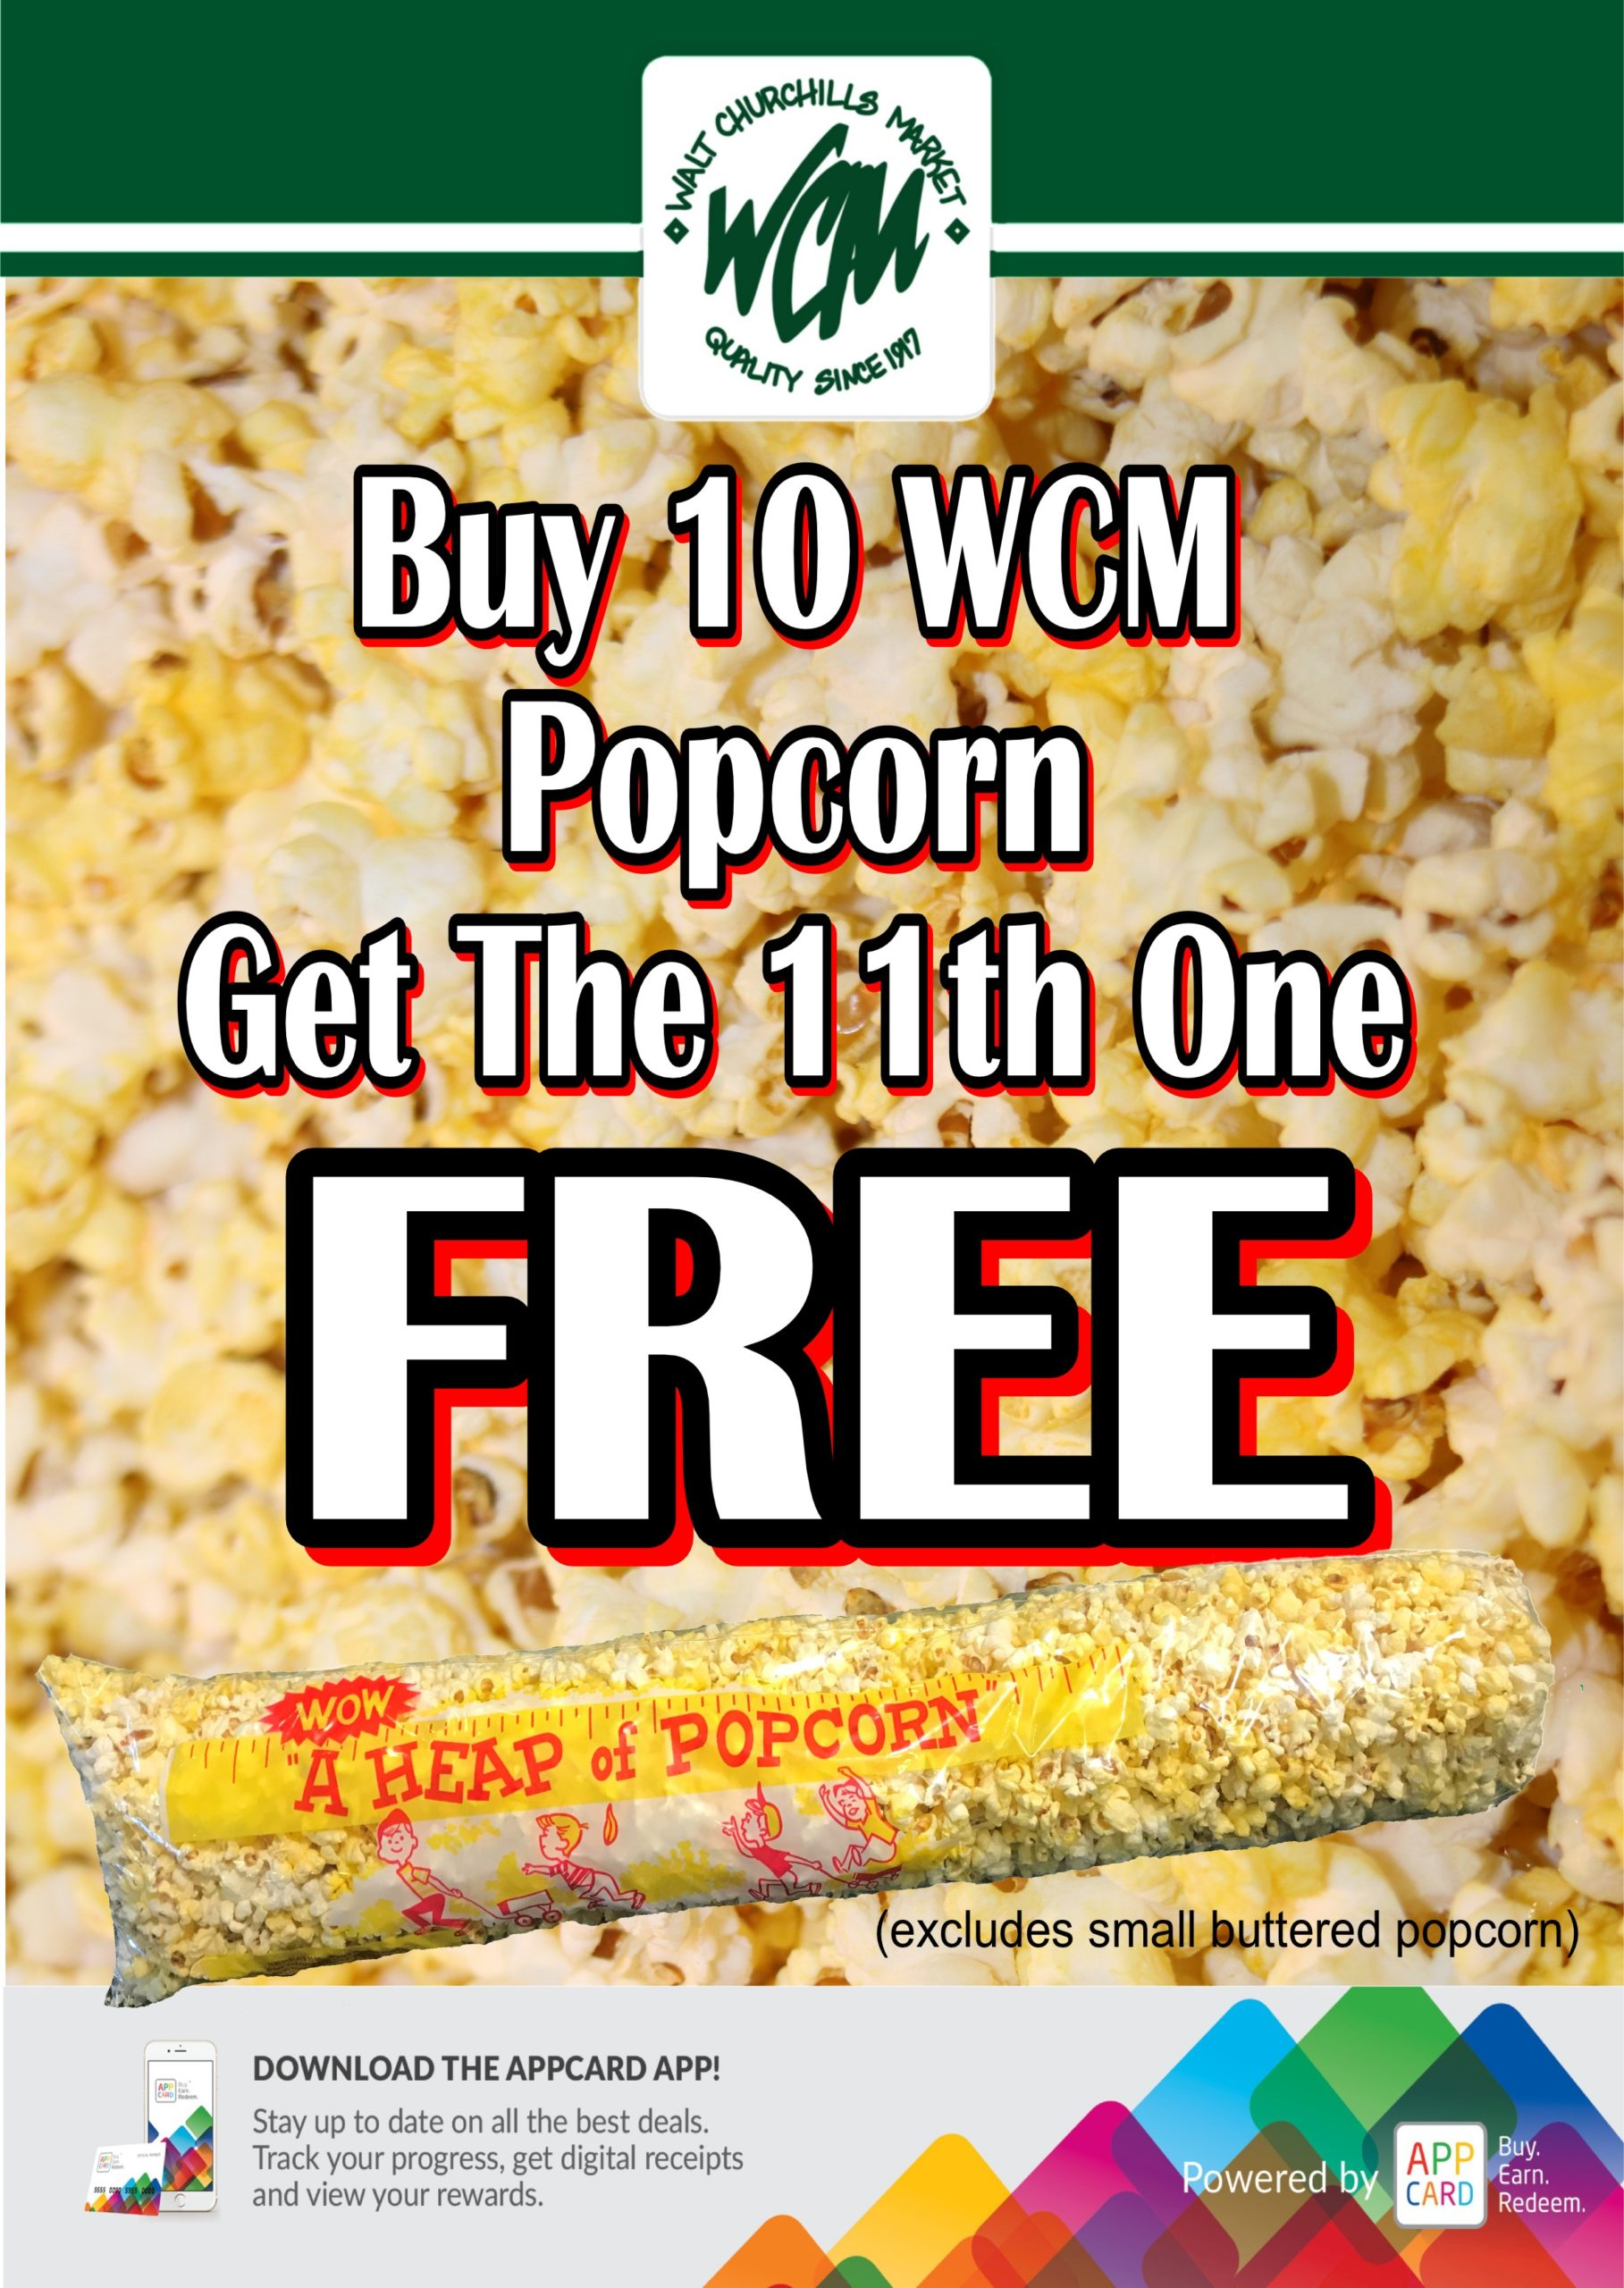 Buy 10 WCM Popcorn Get the 11th one free